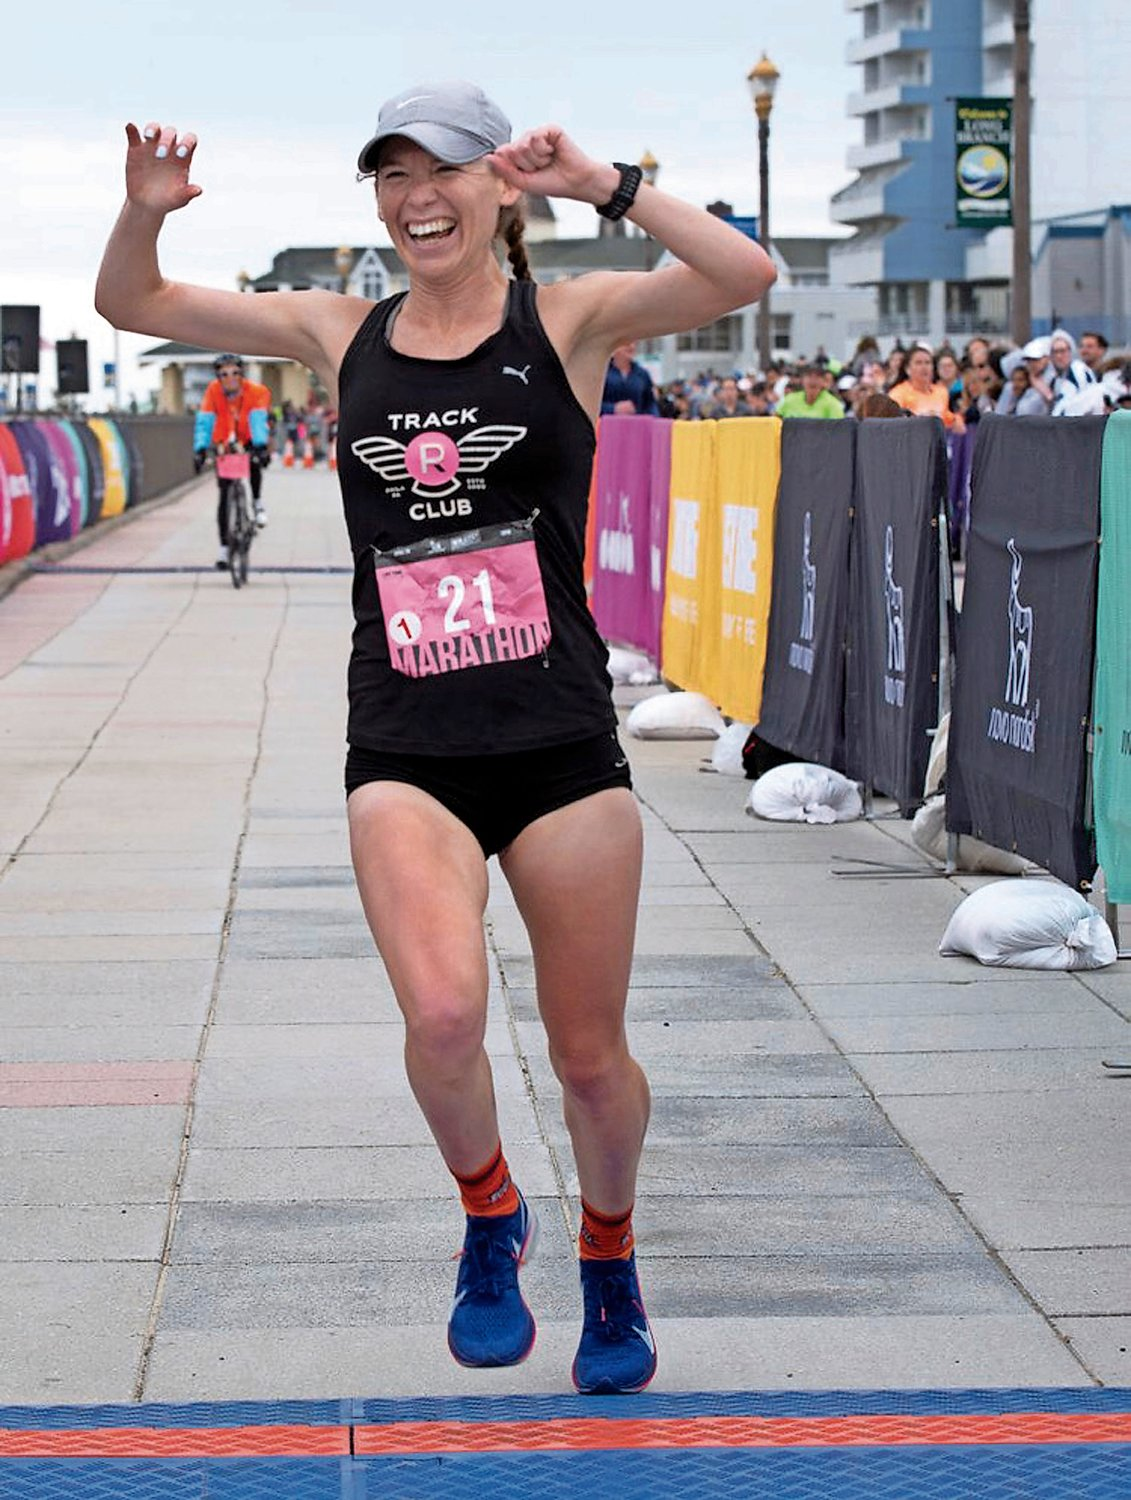 Malverne native Kylie Pearse, 26, could barely contain her excitement as she crossed the finish line at the New Jersey Marathon on April 28.